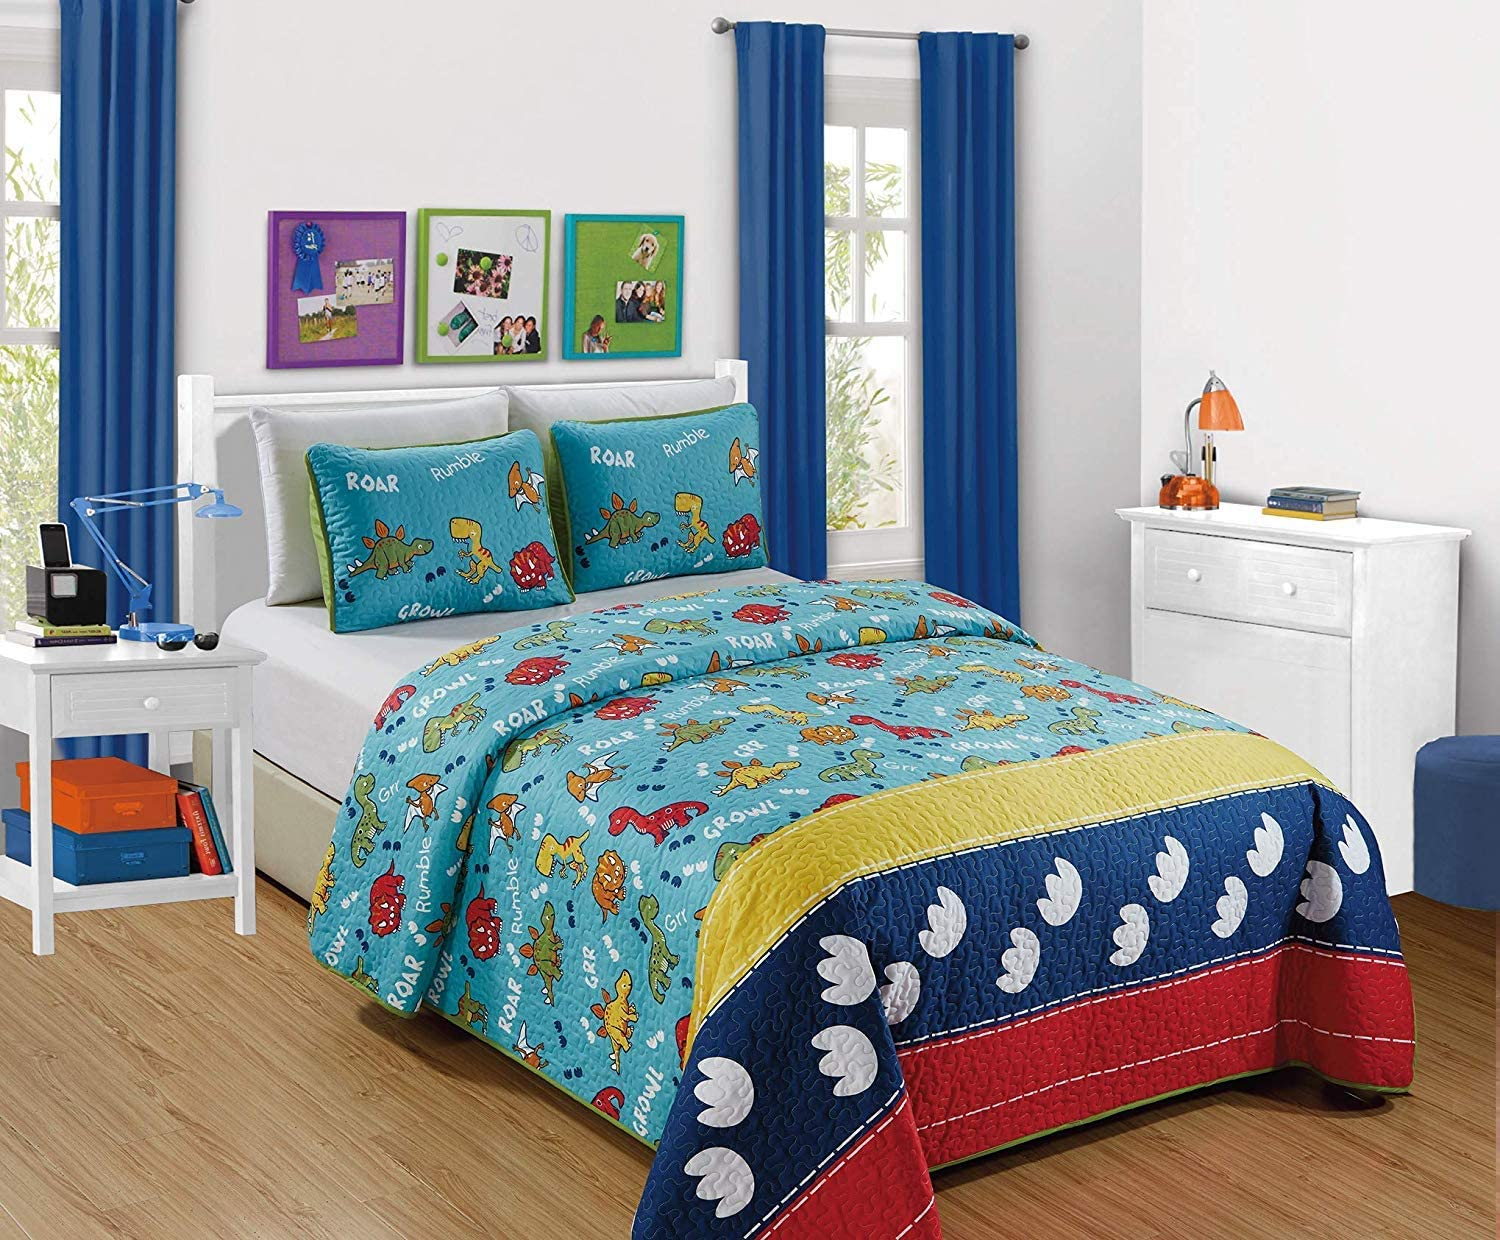 Kids Zone 2pc Twin Size Bedspread Dinosaurs Yellow, Red and Aqua Blue Rar Growl Rumble Voices Foot Print New